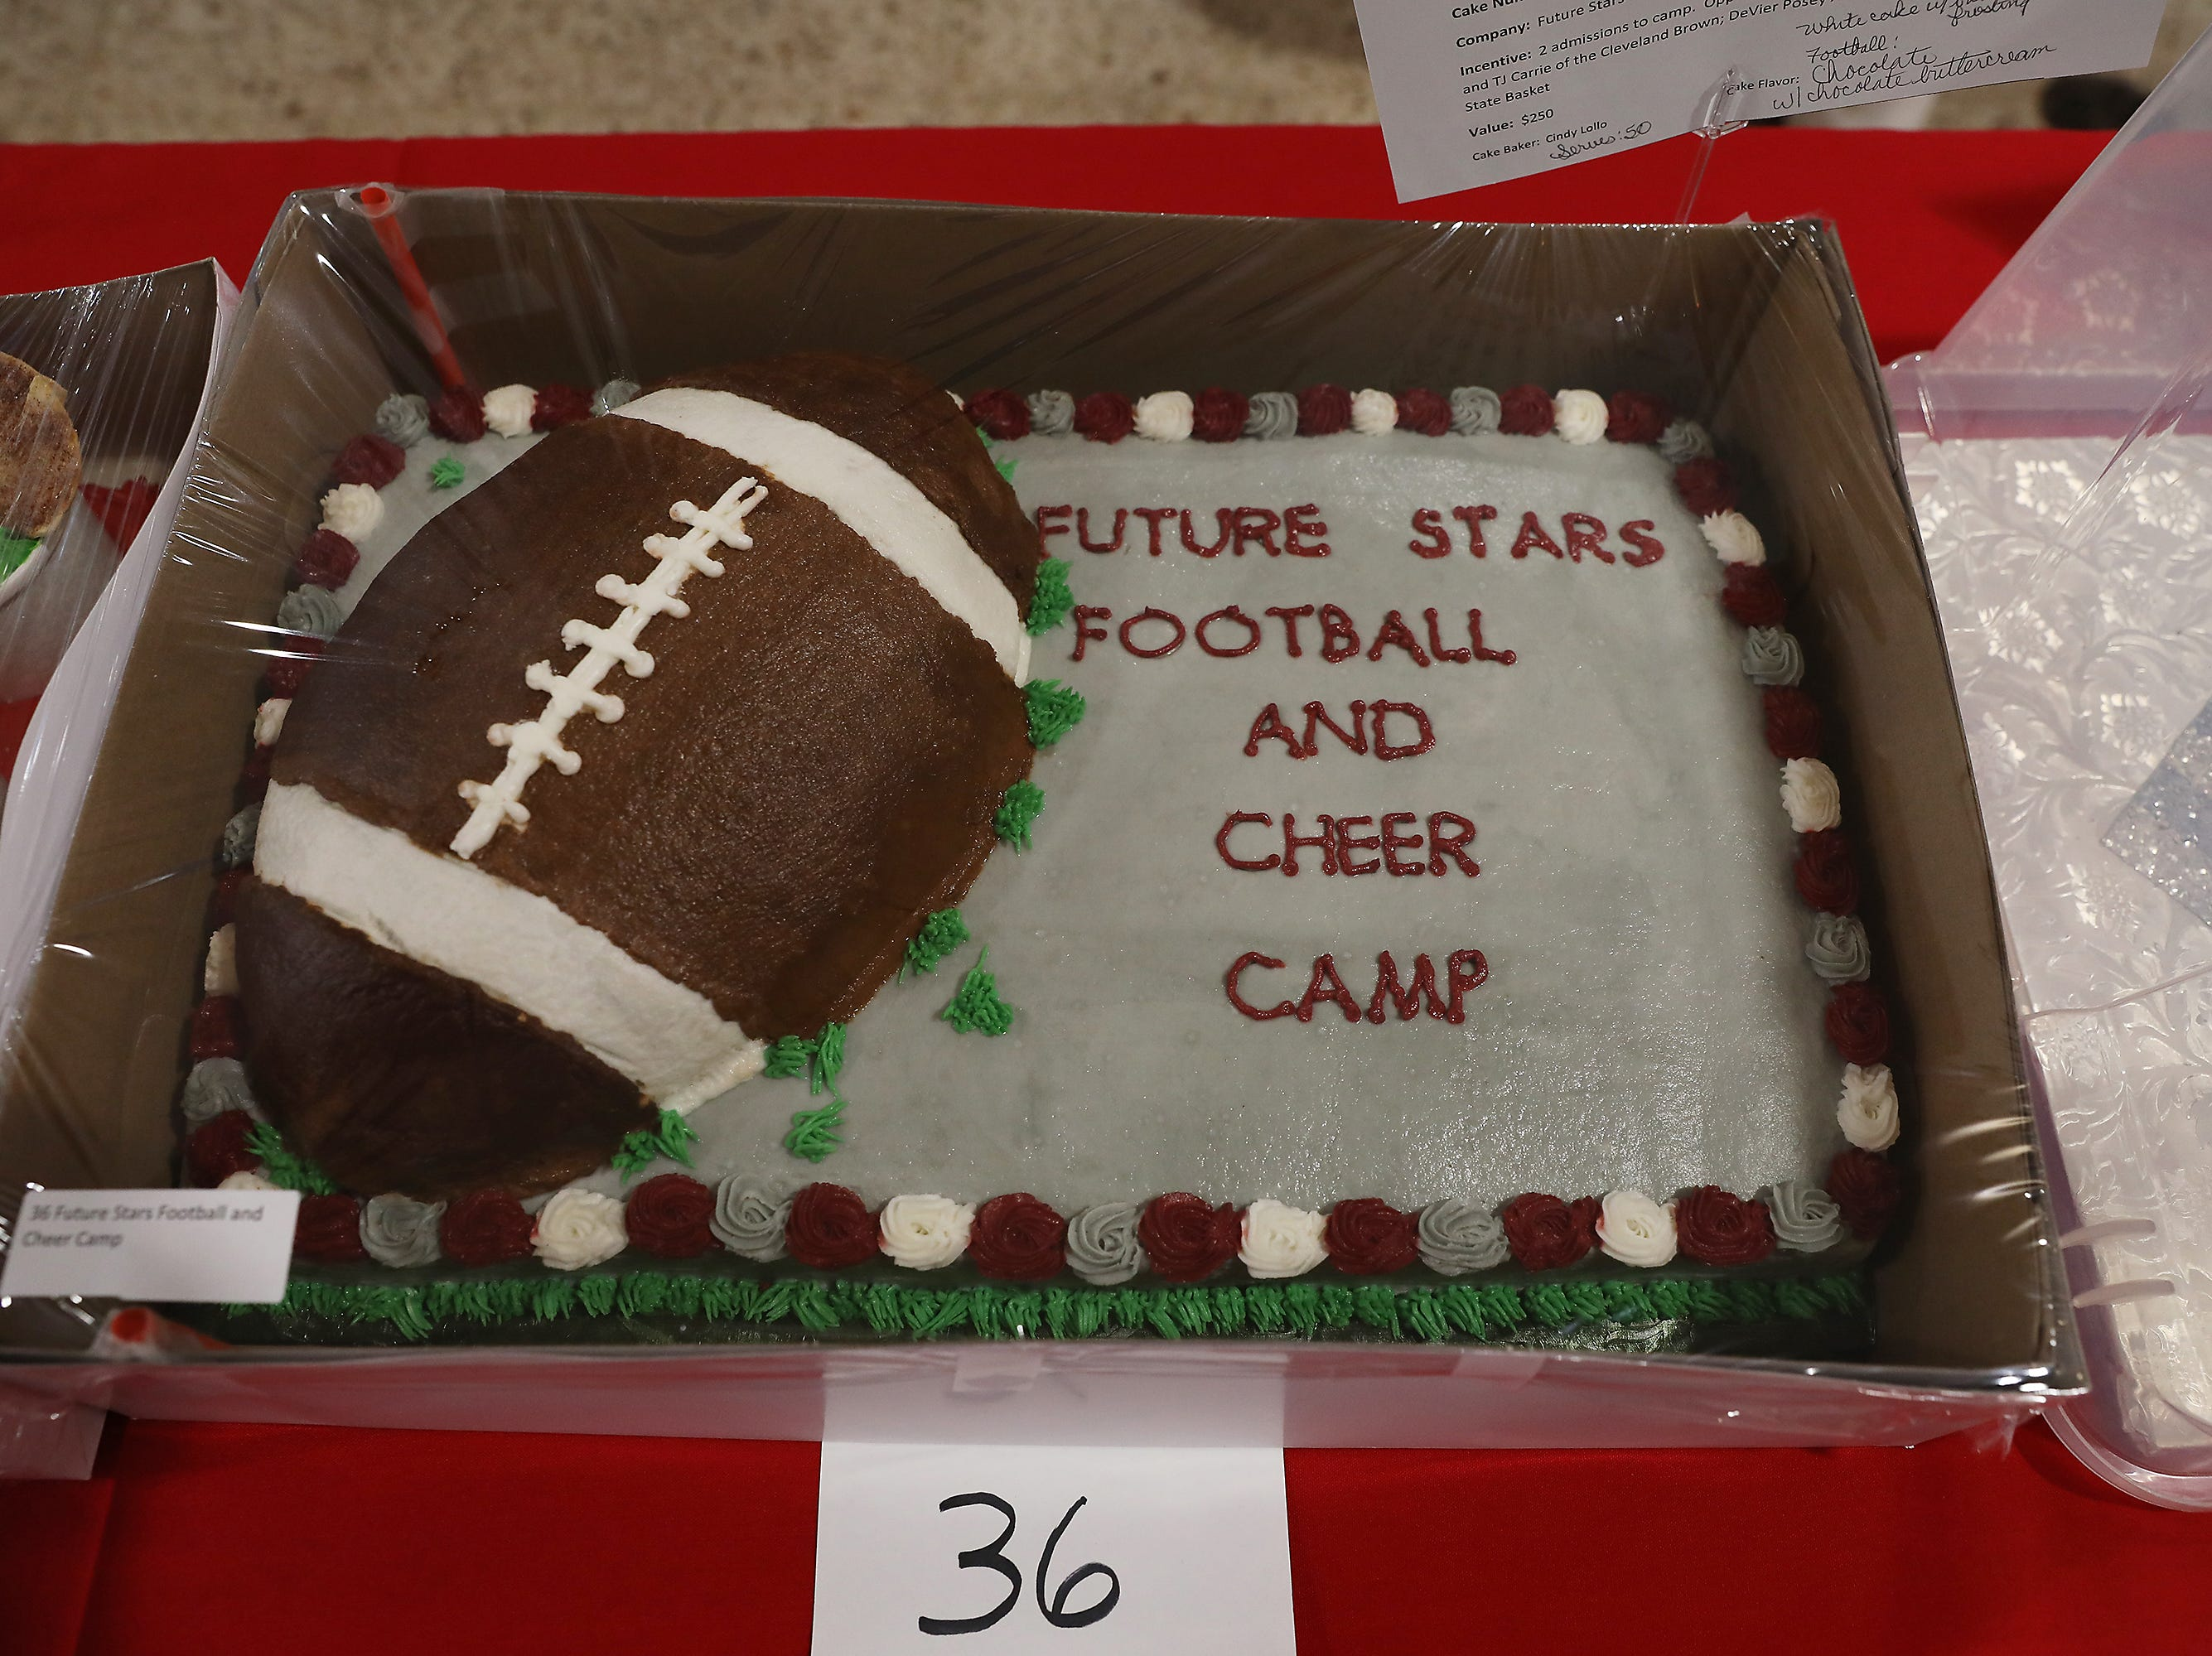 9:45 A.M. Thursday cake 36 Future Stars Football and Cheer Camp - 2 admissions to camp with former Buckeyes and TJ Carrie of the Cleveland Brown, DeVier Posey autograph jersey, Ohio State Basket; $250